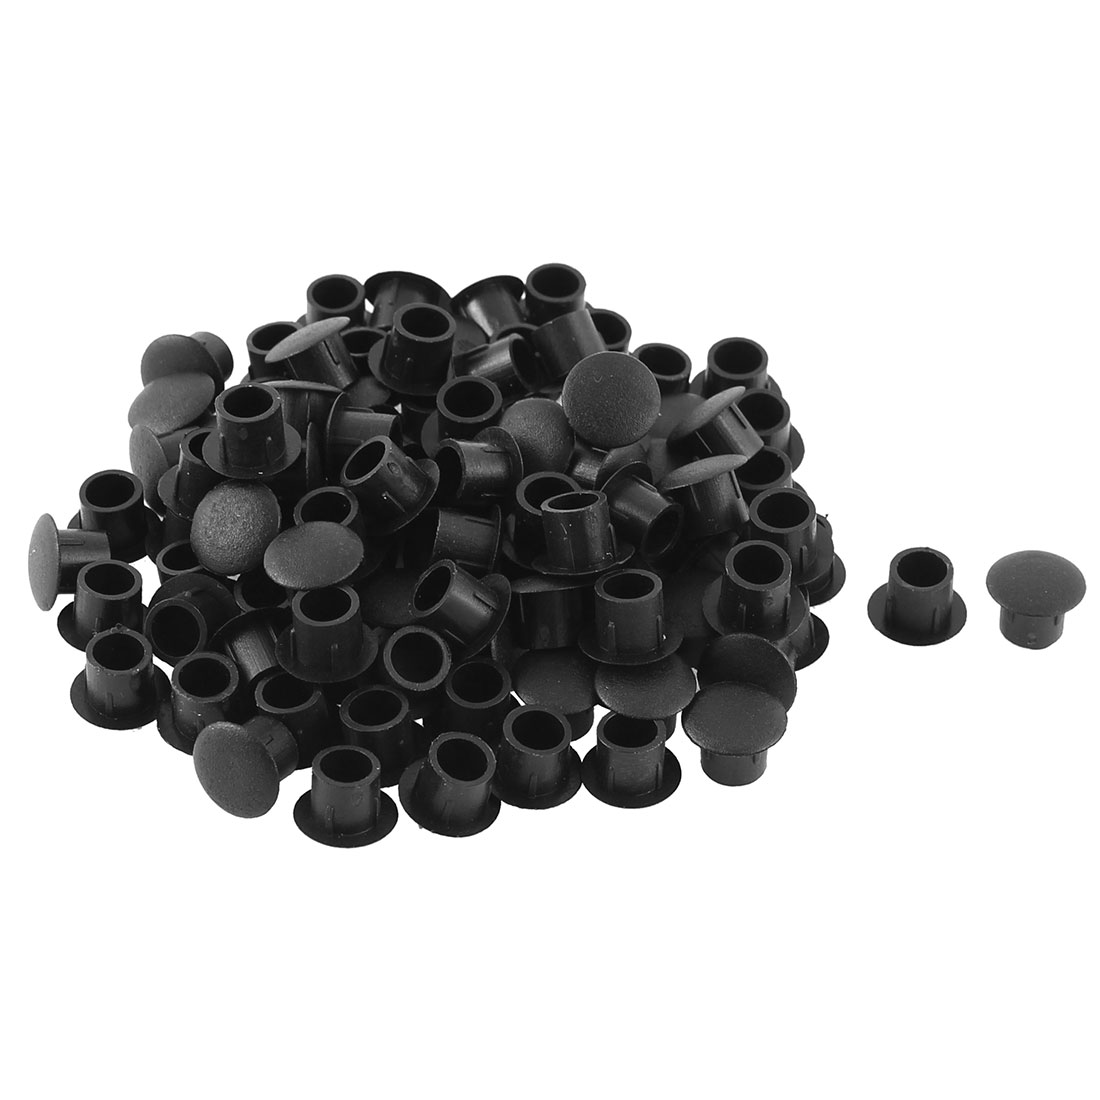 Home Kitchen Plastic Cabinet Locking Hole Cover Tube Insert Black 8mm Dia 100pcs